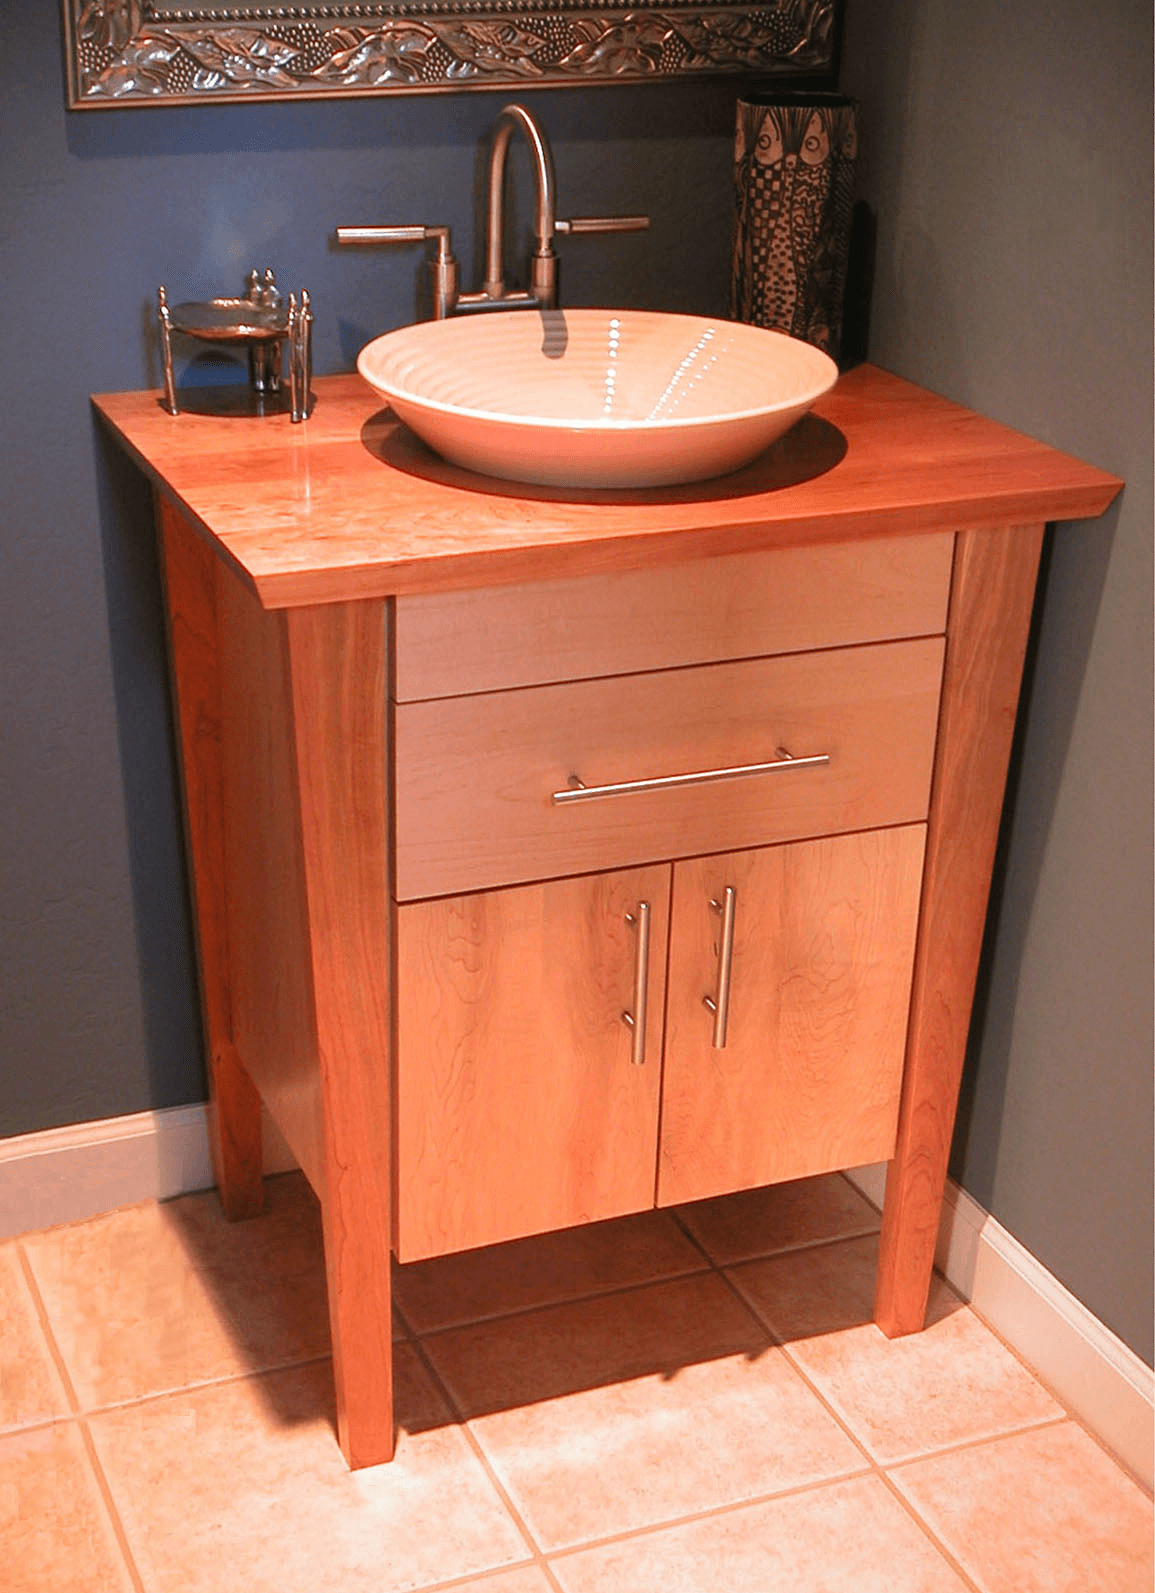 A Modern Living Room, Pedestal Sink Vanity Cabinet The Pros And Cons